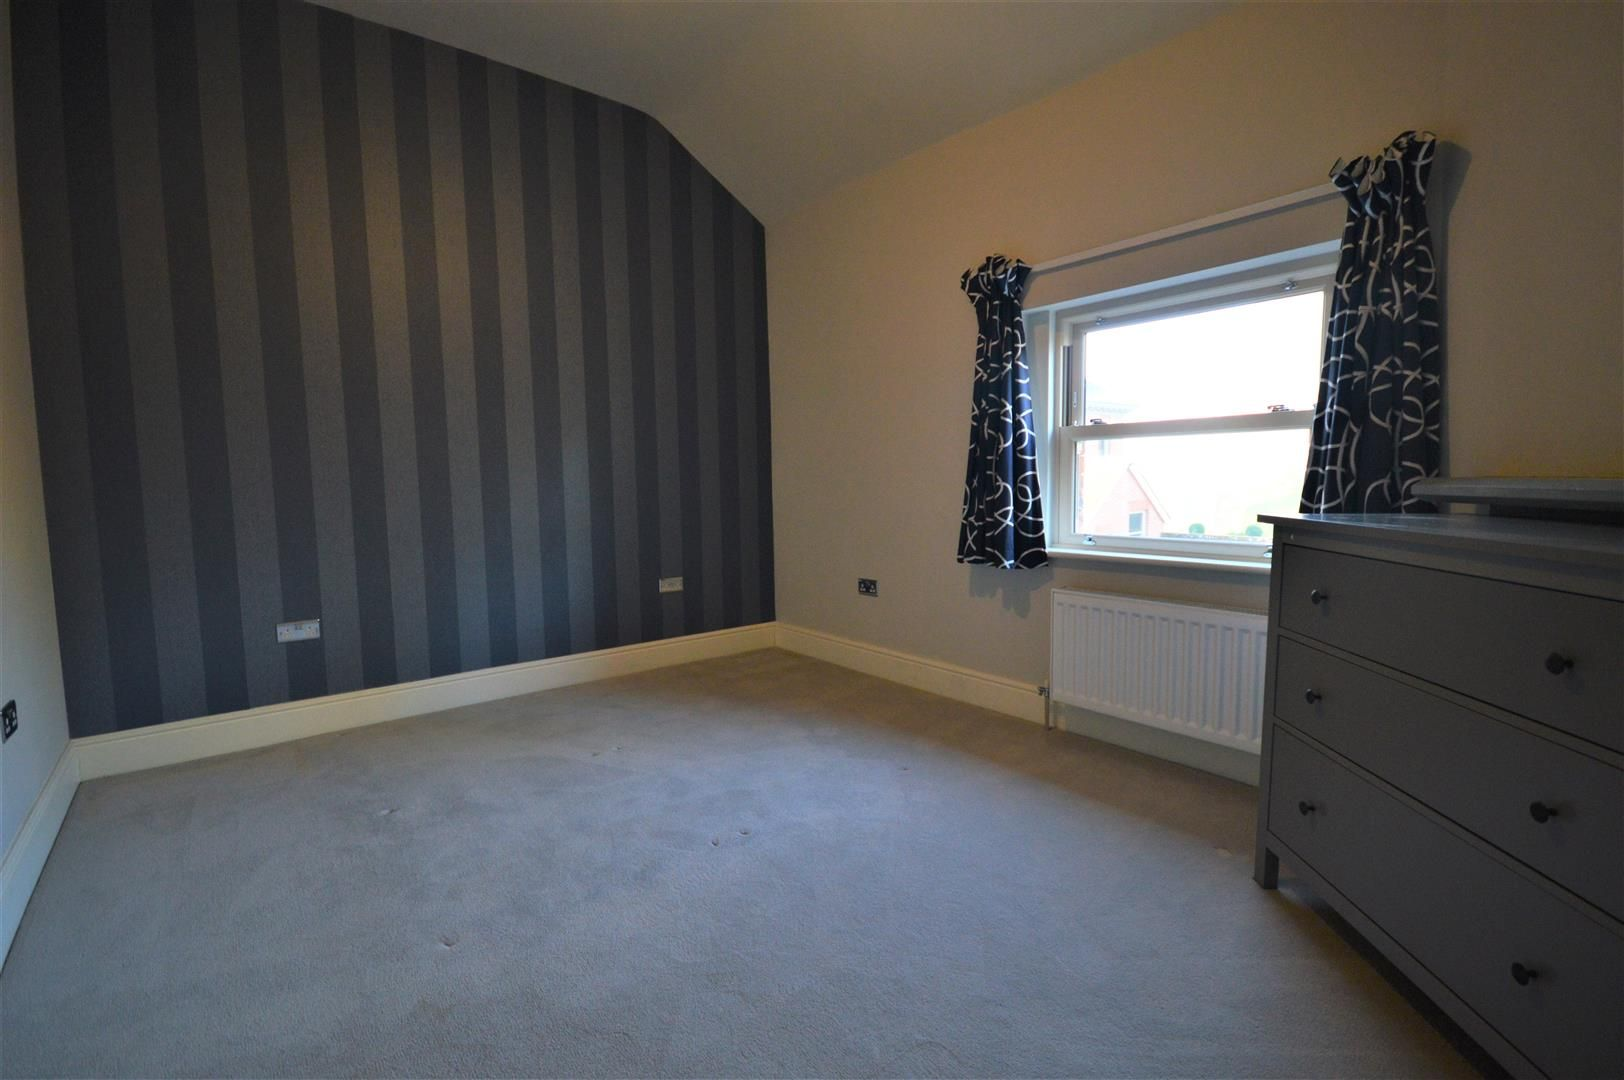 2 bed apartment to rent in Letton 5